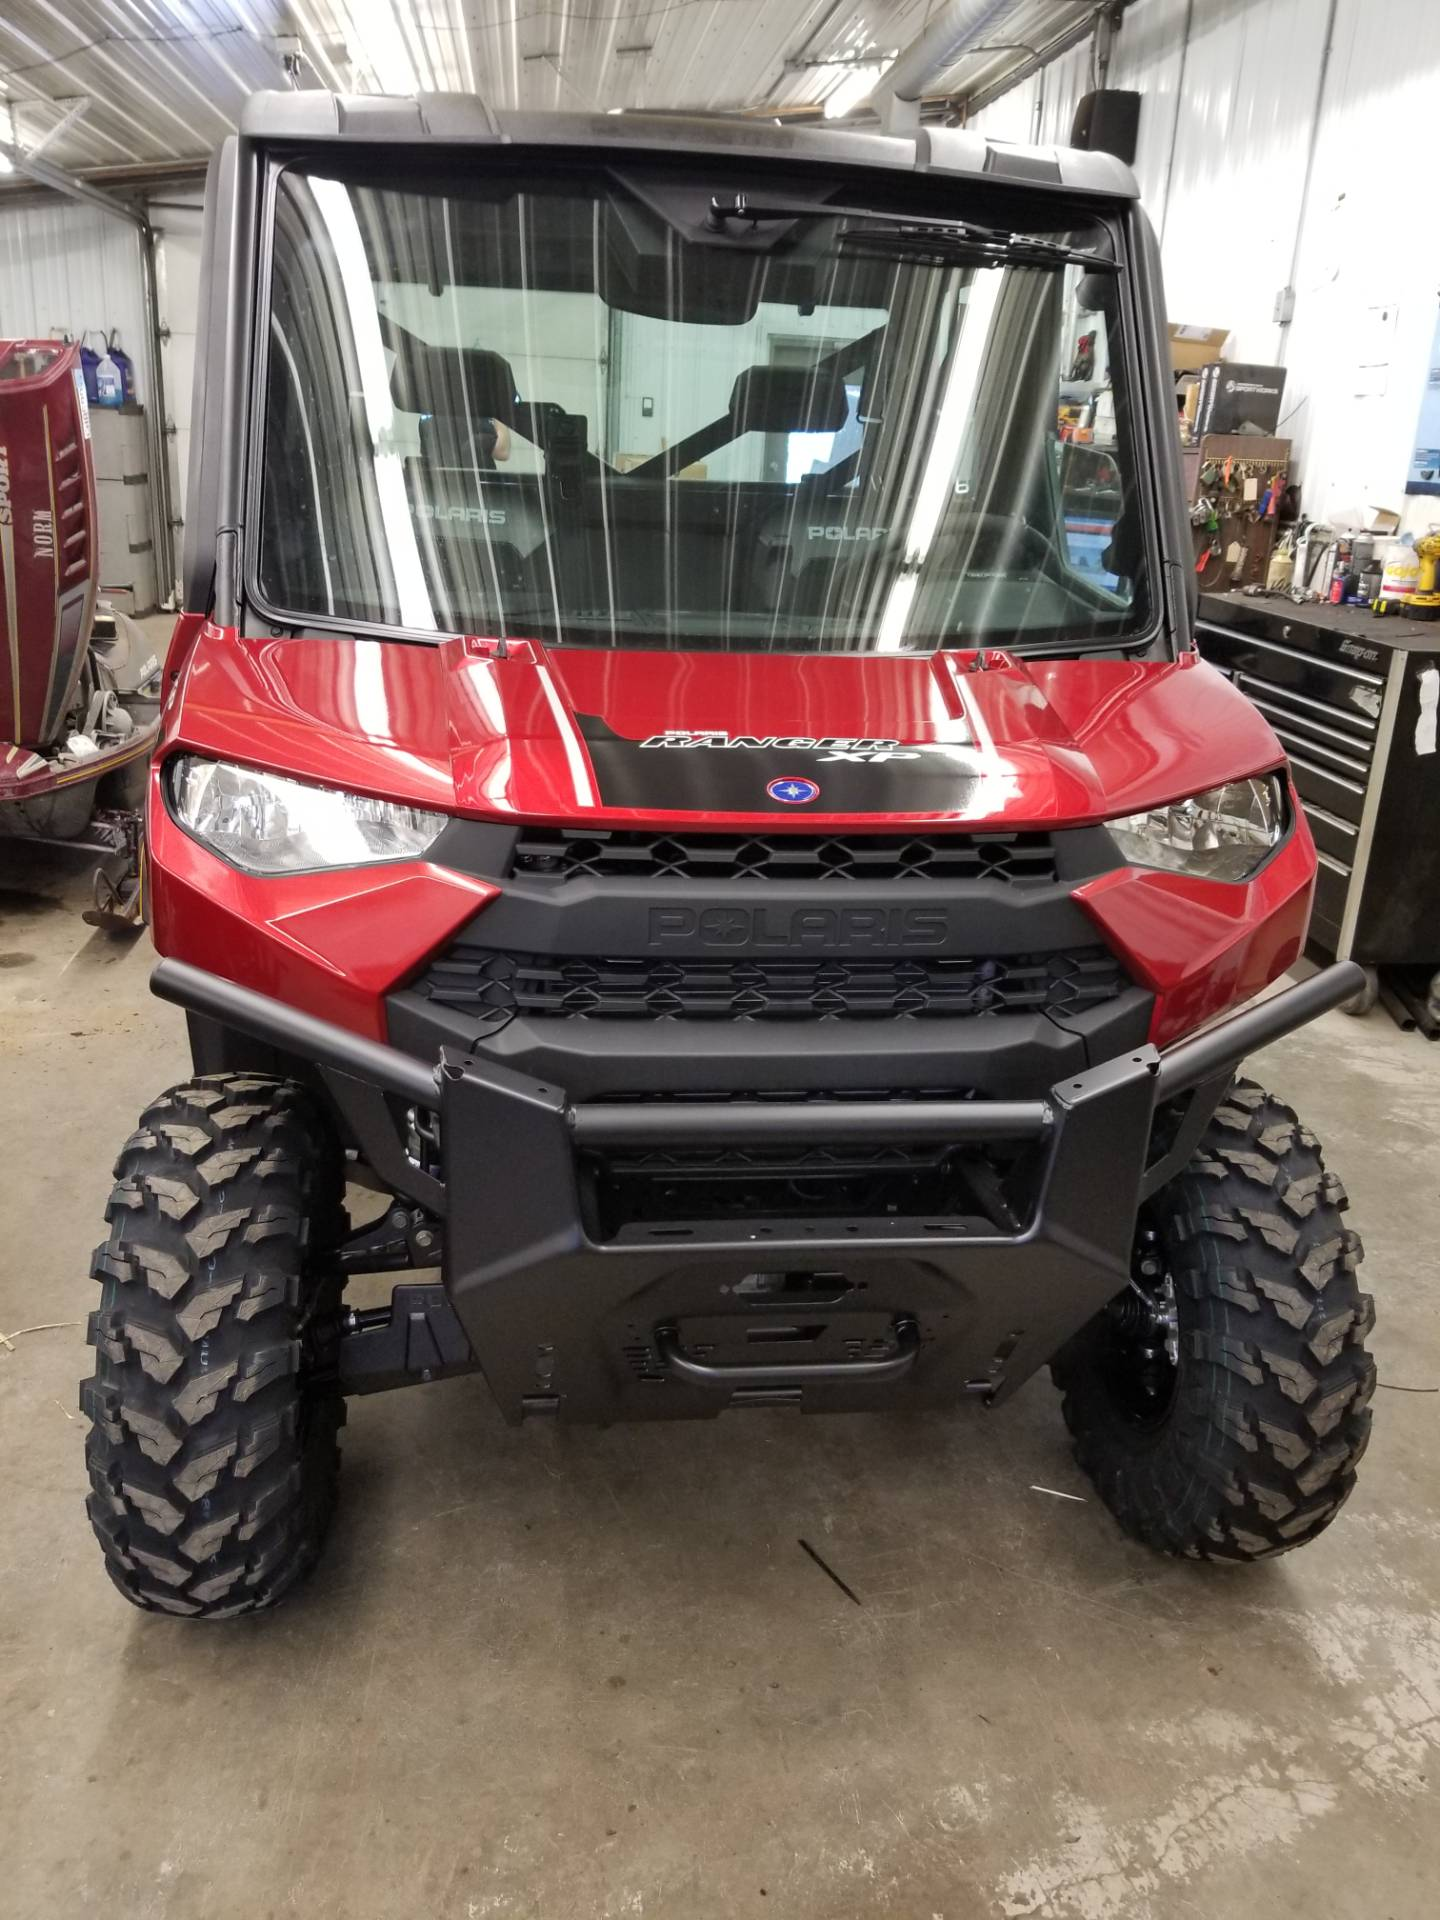 2019 Polaris Ranger Crew XP 1000 EPS NorthStar HVAC Edition in Bigfork, Minnesota - Photo 2